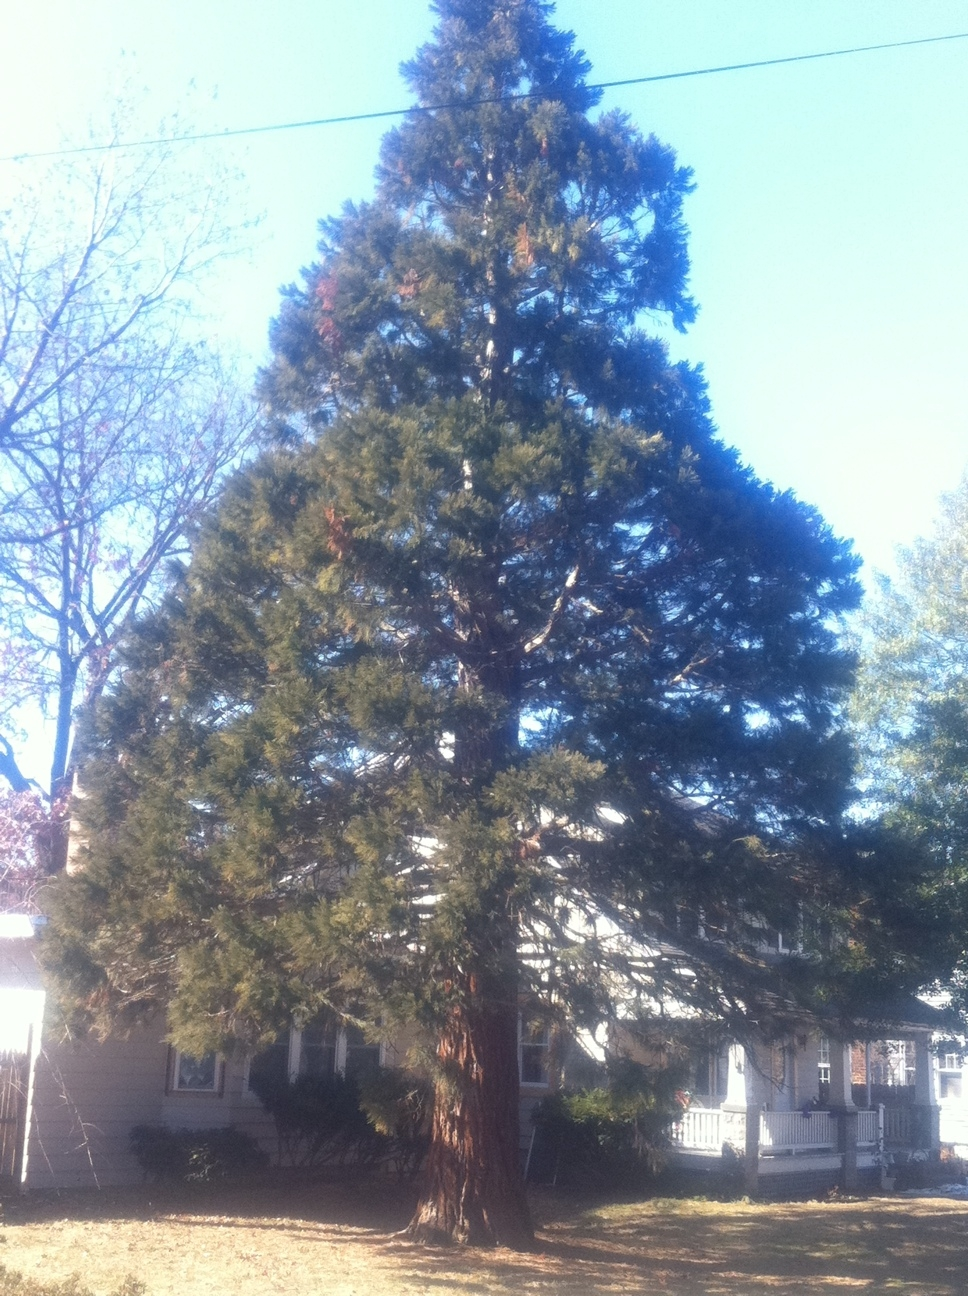 Broomall giant sequoia which has been pruned around the town power